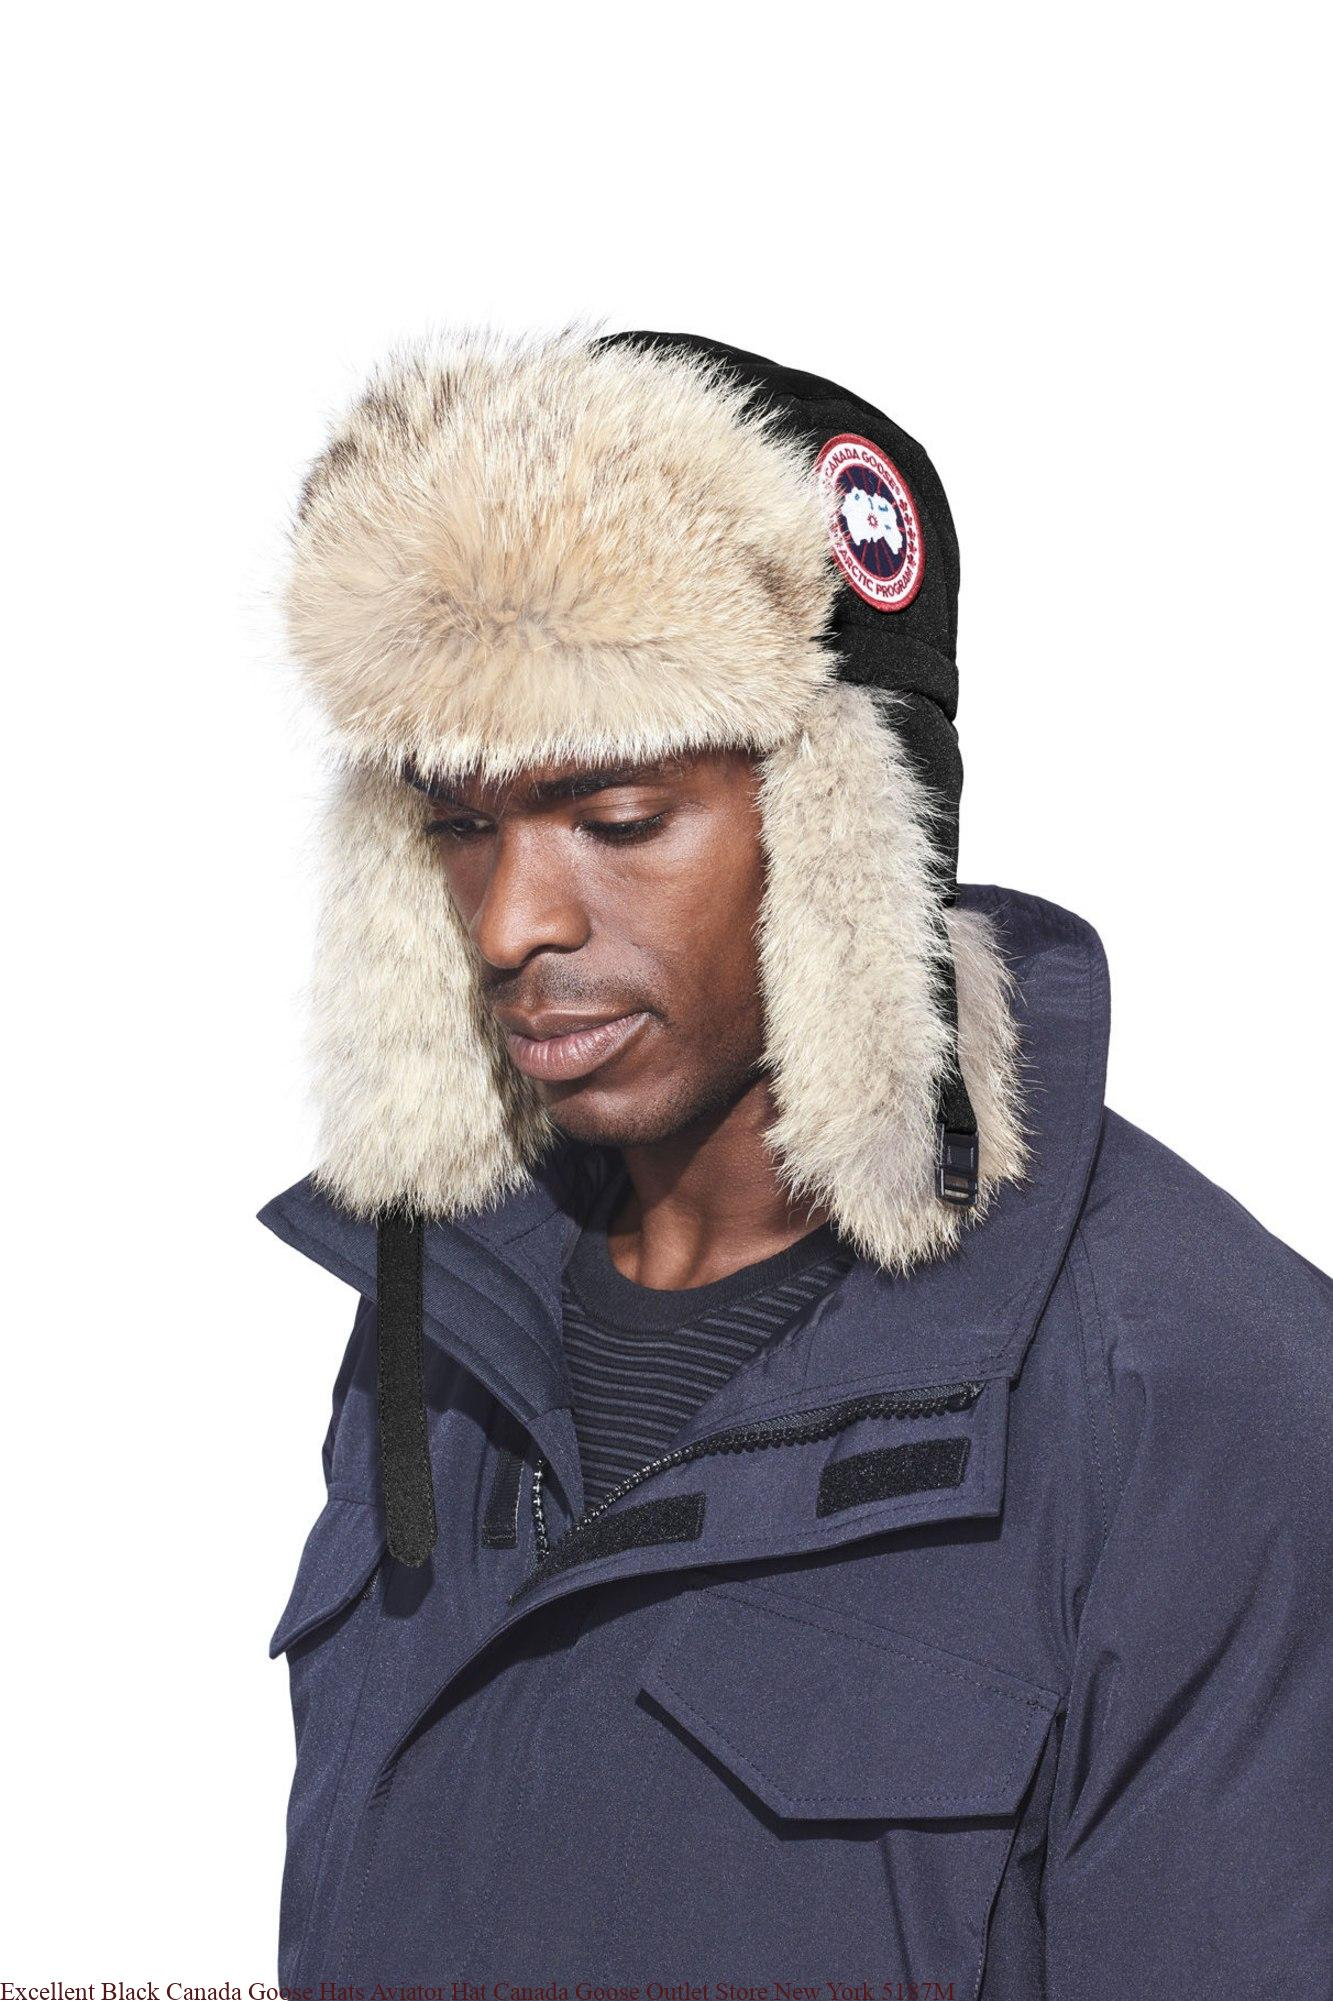 ca6444b09de24 Excellent Black Canada Goose Hats Aviator Hat Canada Goose Outlet Store New  York 5187M – UK Cheap Canada Goose Outlet Jackets On Sale